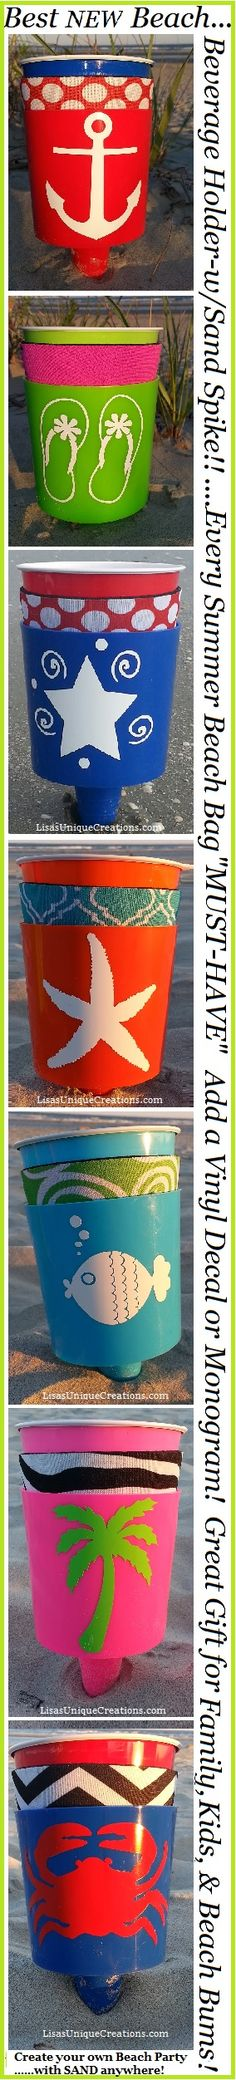 """This Summers Newest """"IT"""" item!  Sand Spike BEACH DRINK HOLDER w/Neoprene Coozie & Vinyl Decal!  Too Cute & ADORABLE!!! www.LisasUniqueCreations.com"""